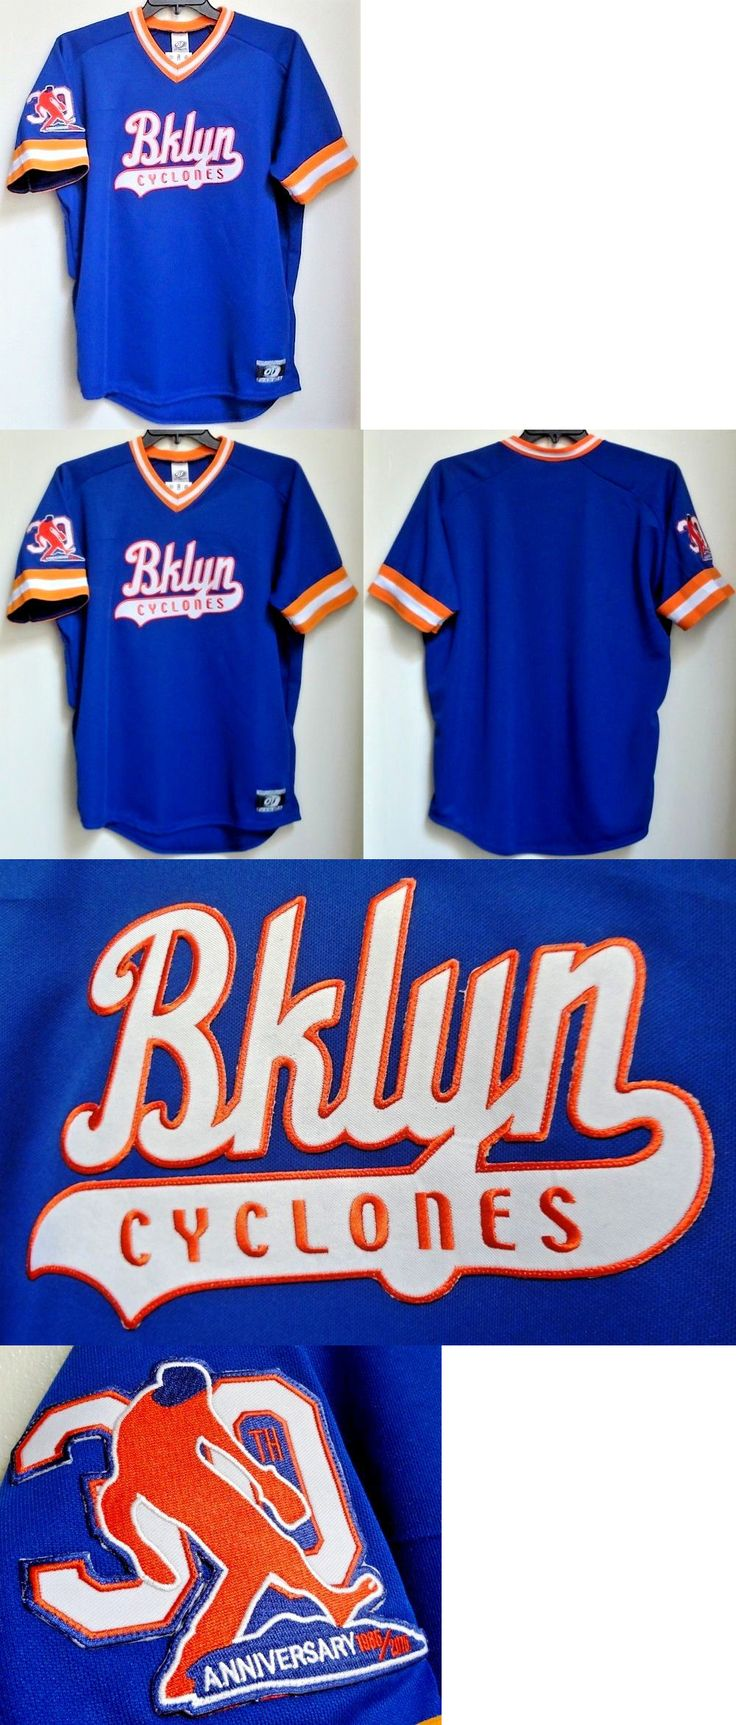 Baseball-Minors 24441: New York Mets Sidd Finch 30Th Anniversary 1985-2015 Jersey L Brooklyn Cyclones -> BUY IT NOW ONLY: $129.97 on eBay!